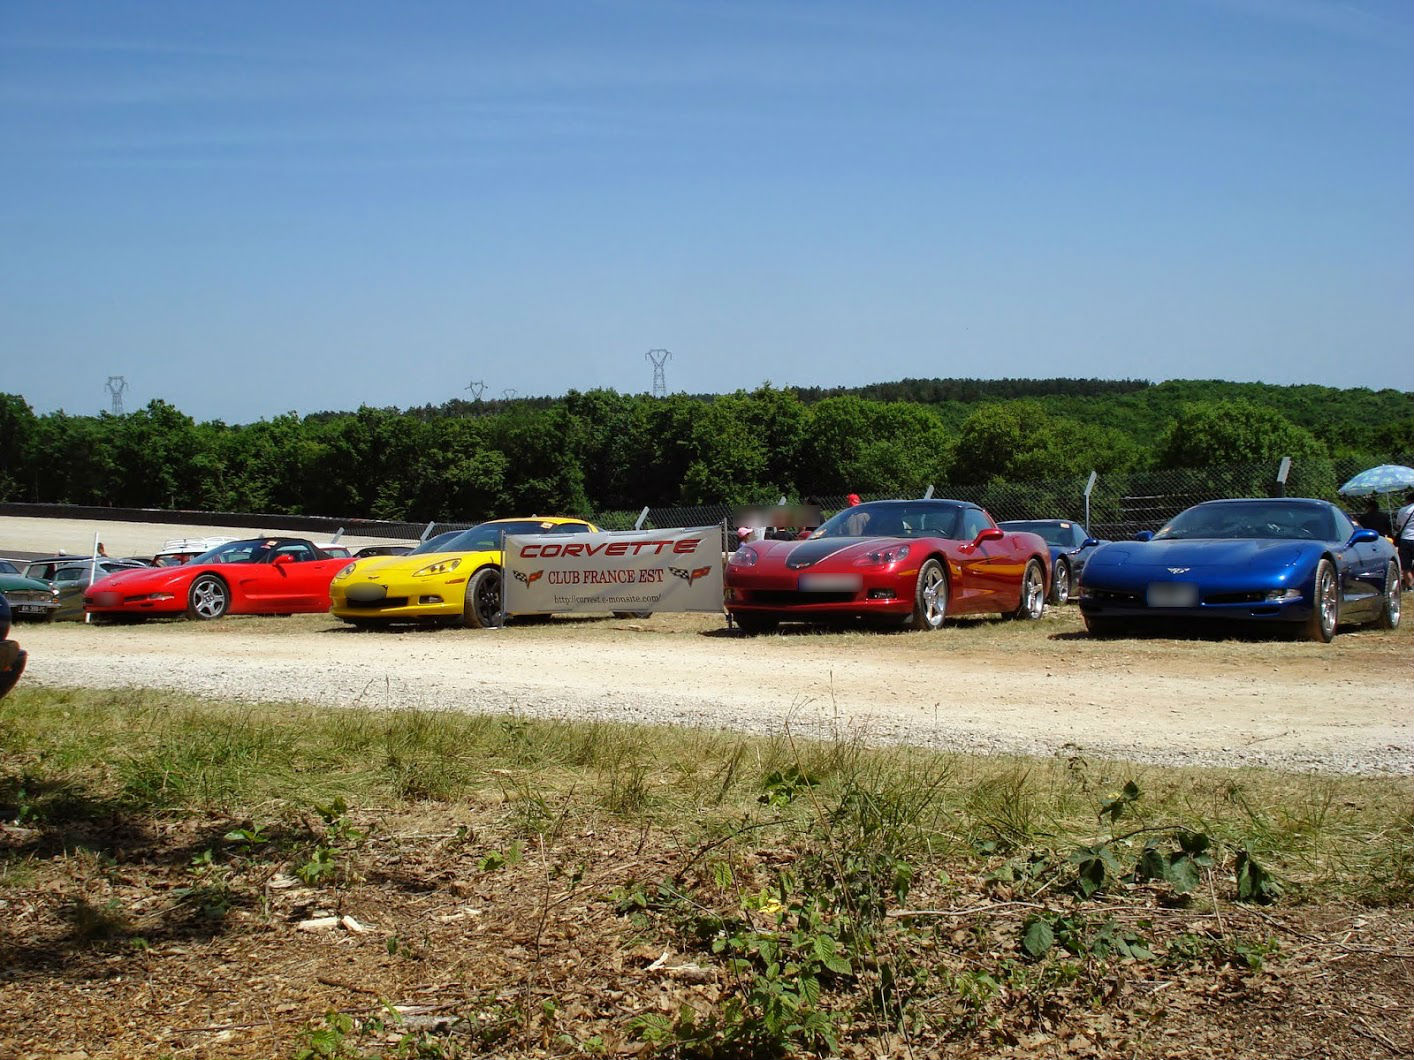 Corvette club france est 4